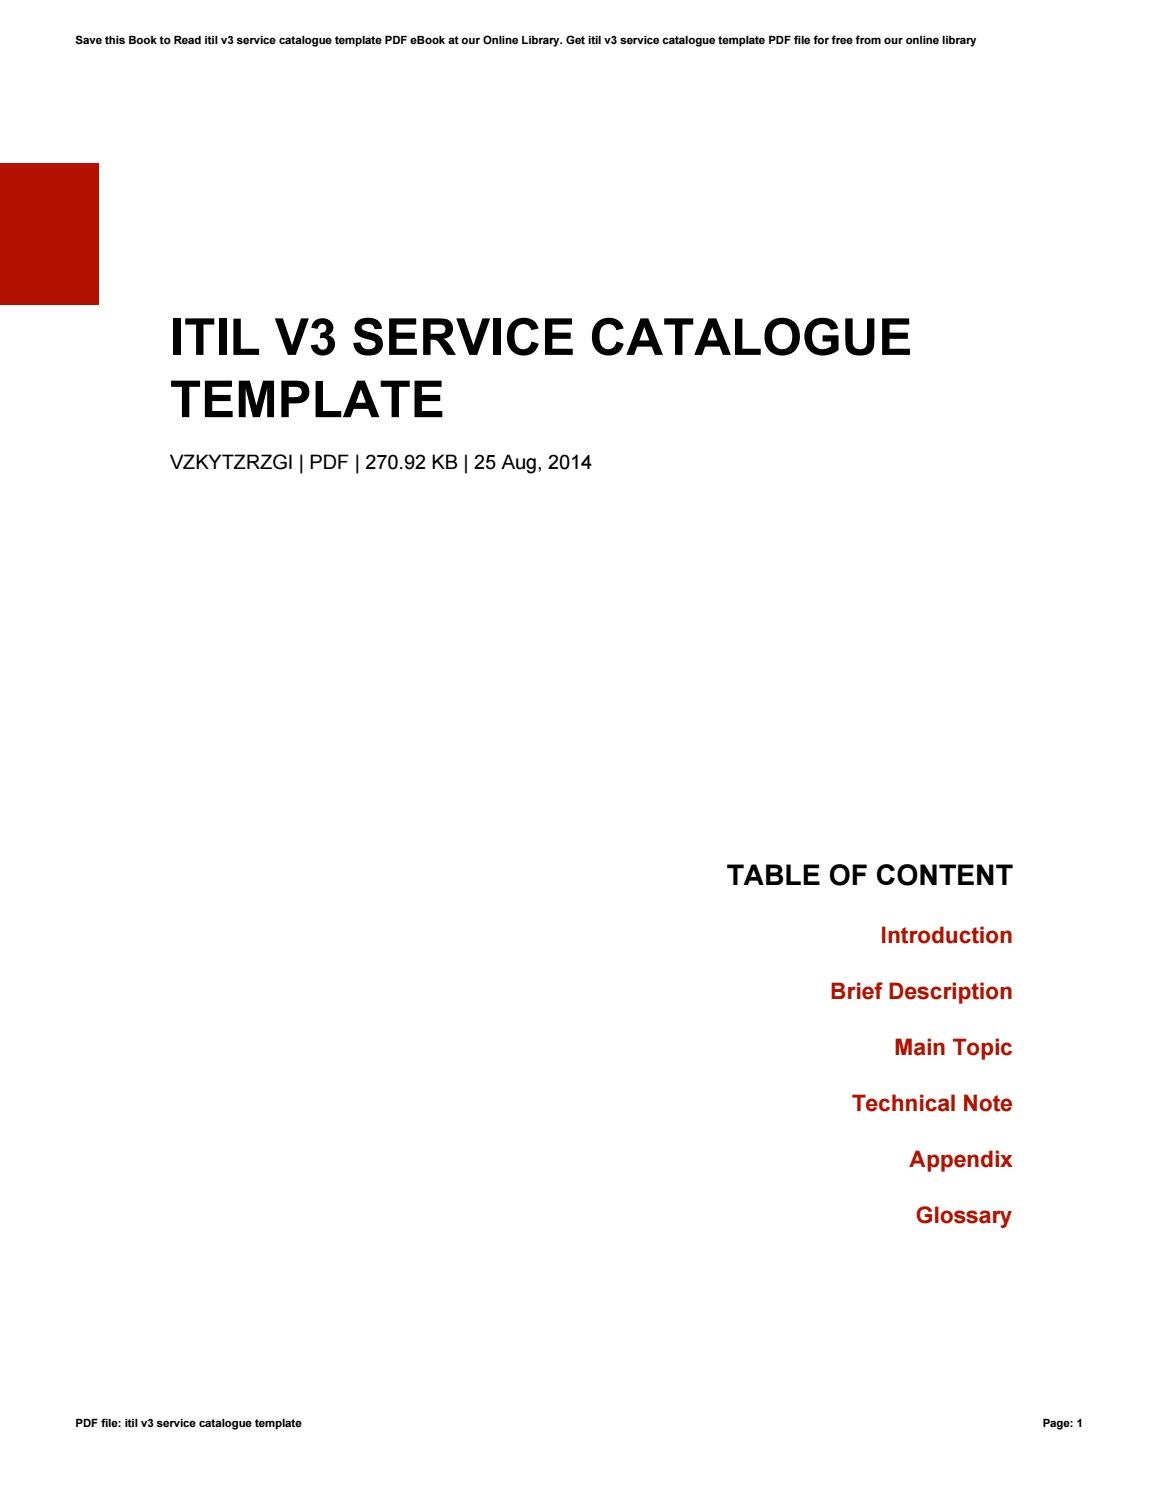 Itil v3 service catalogue template by Amelia - issuu